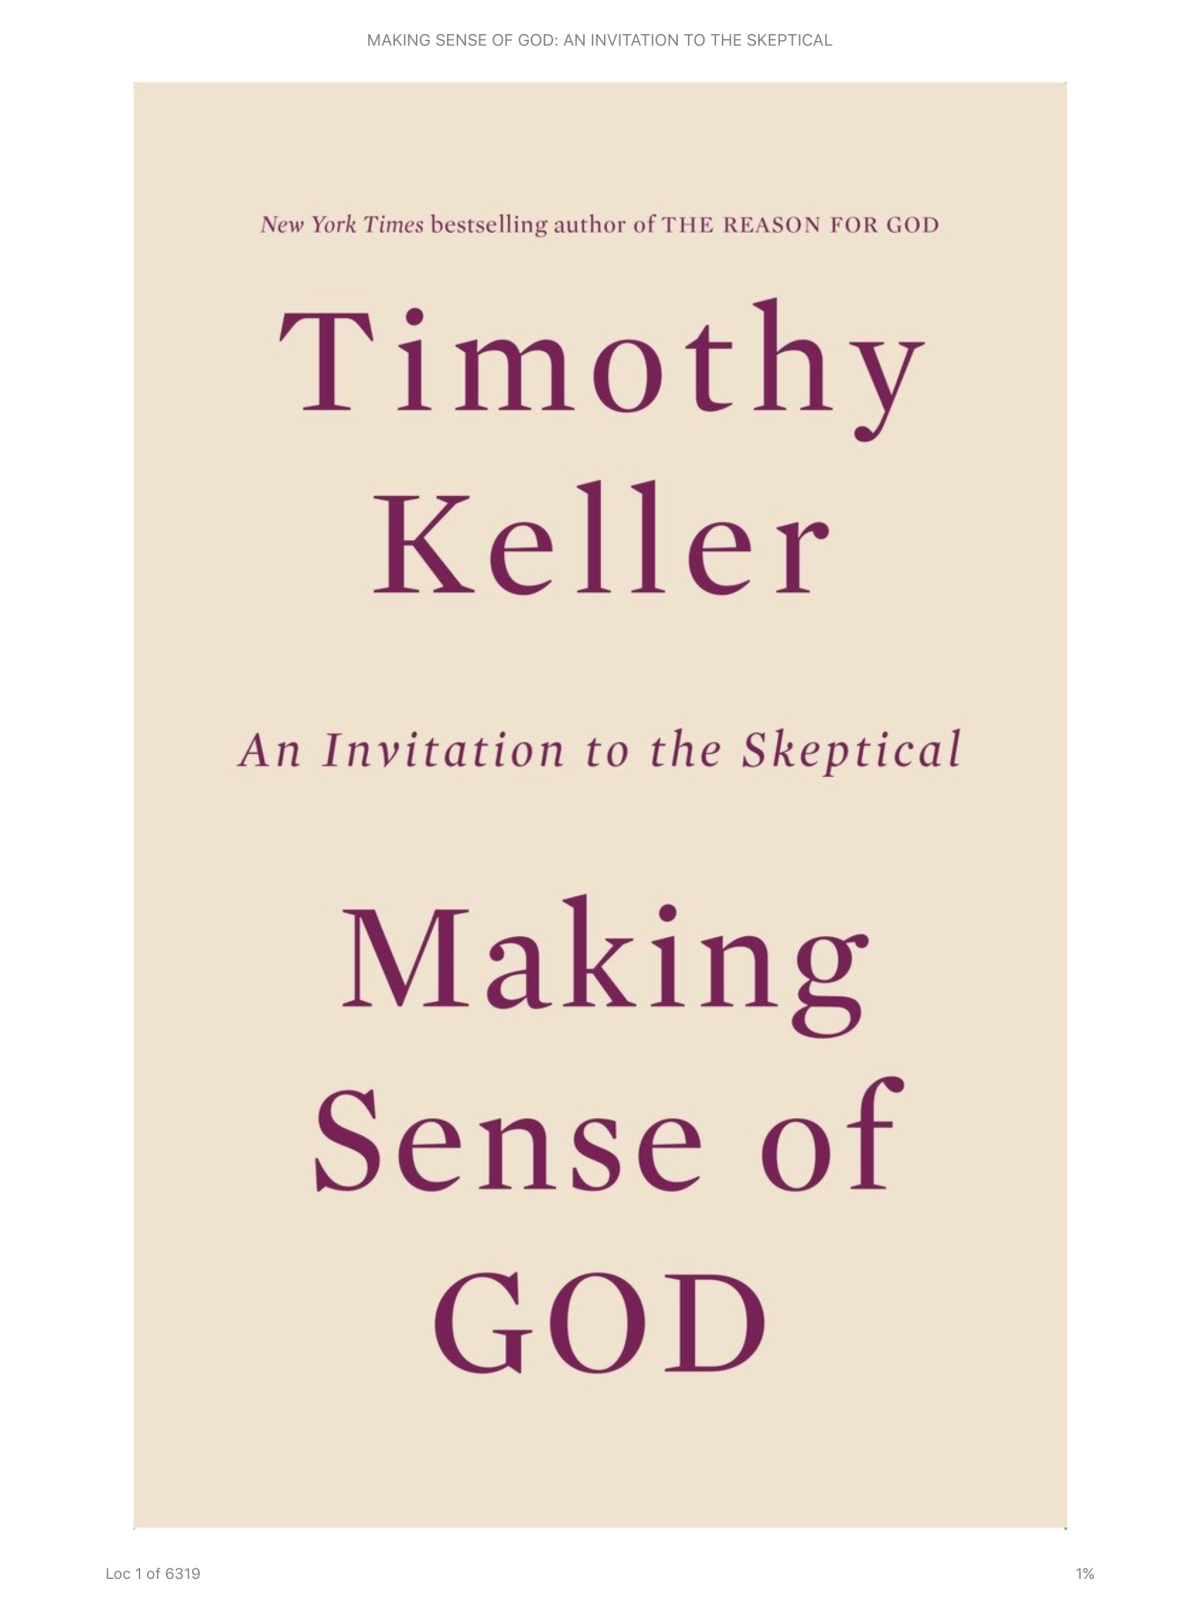 Making Sense of God by Timothy Keller: aReview